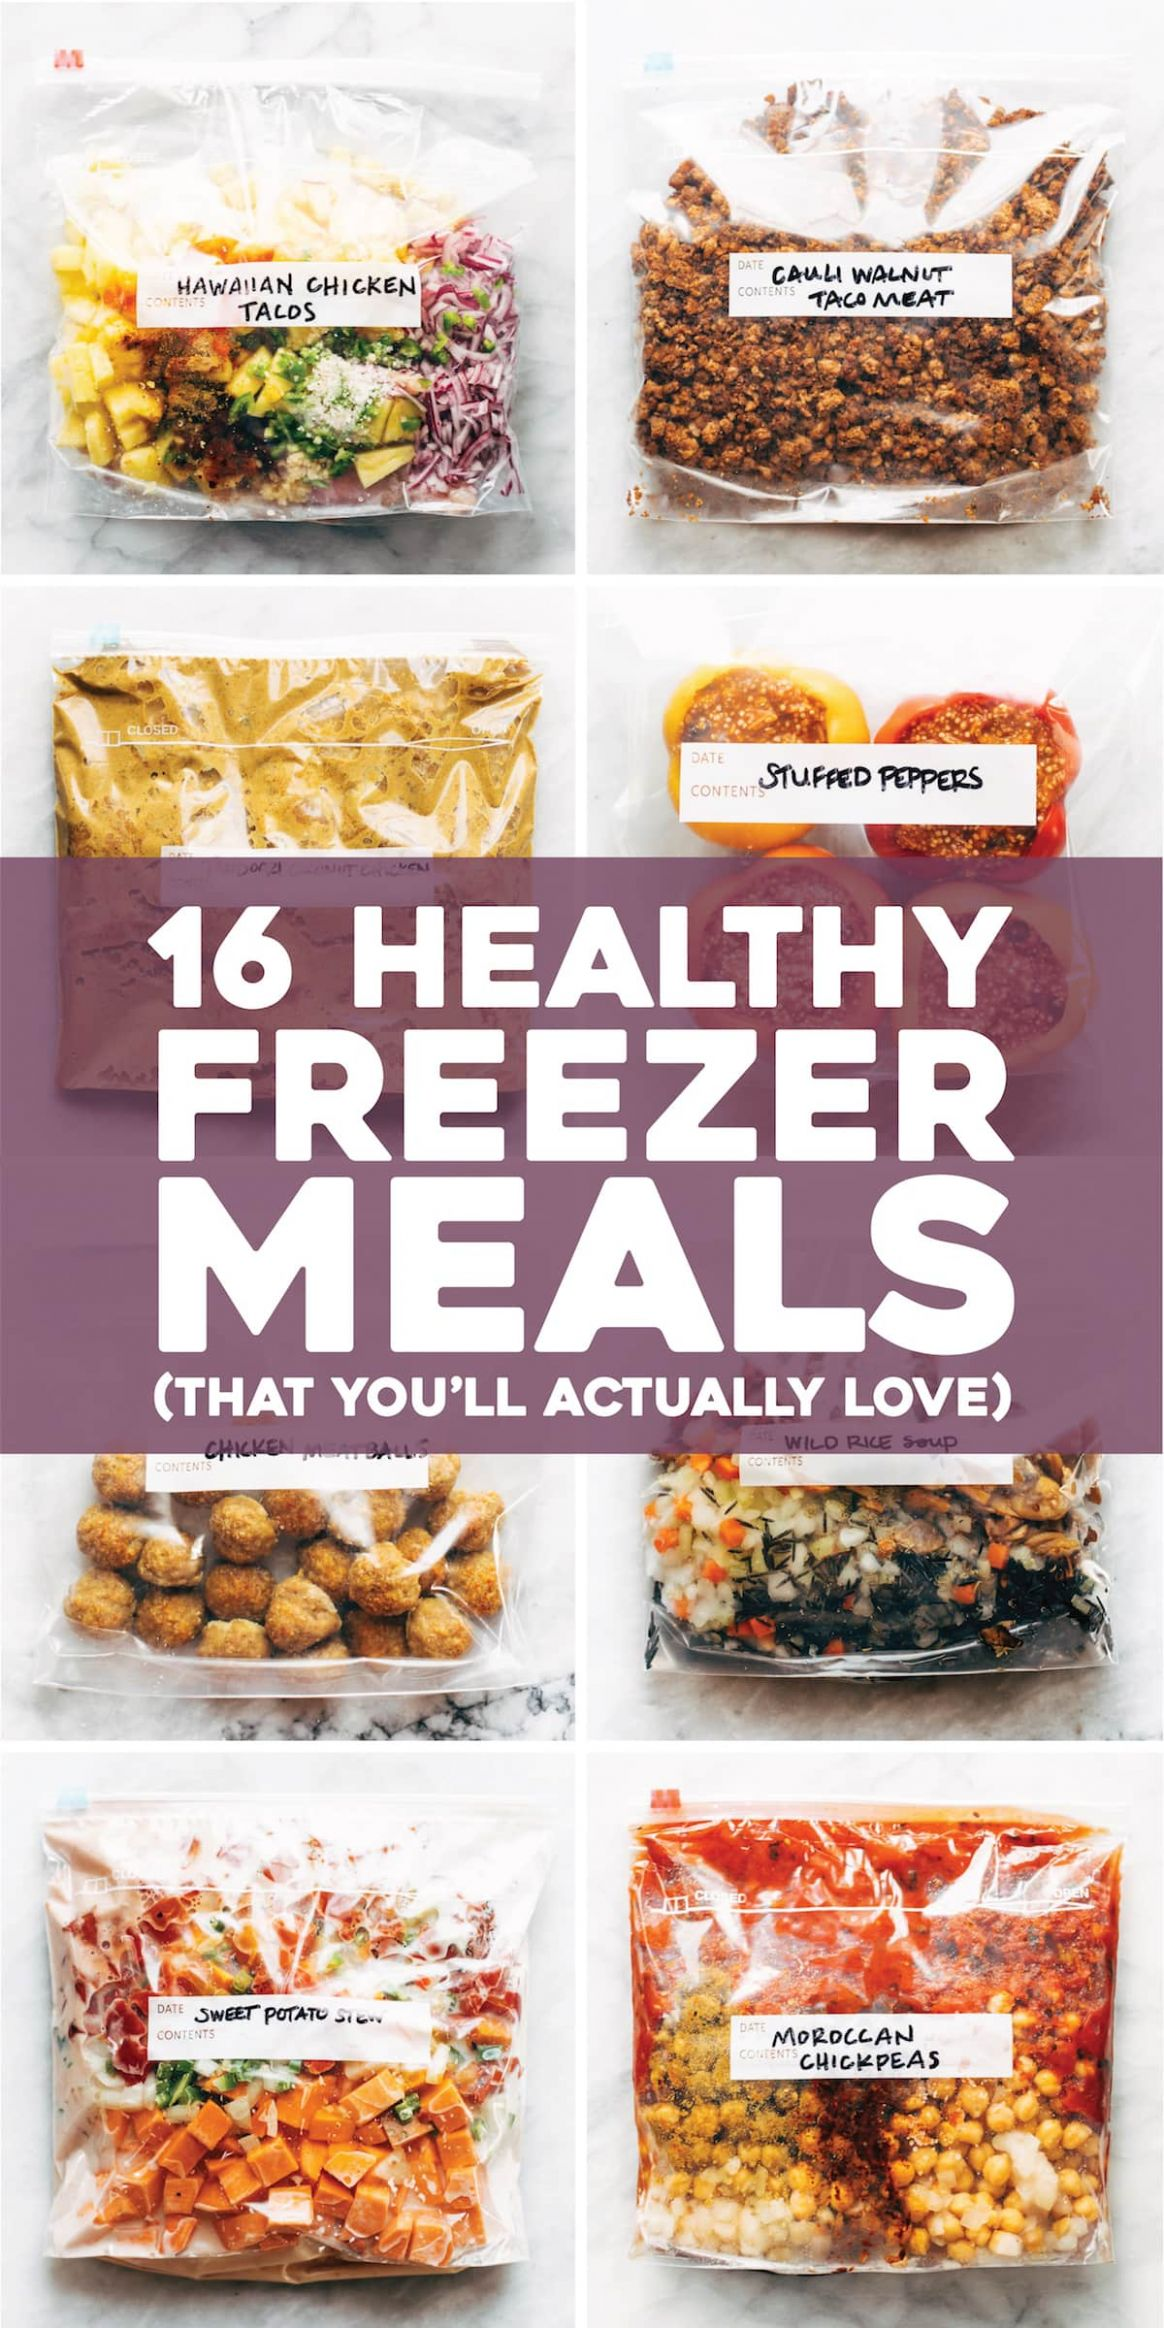 11 Healthy Freezer Meals (That You'll Actually Love) - Pinch of Yum